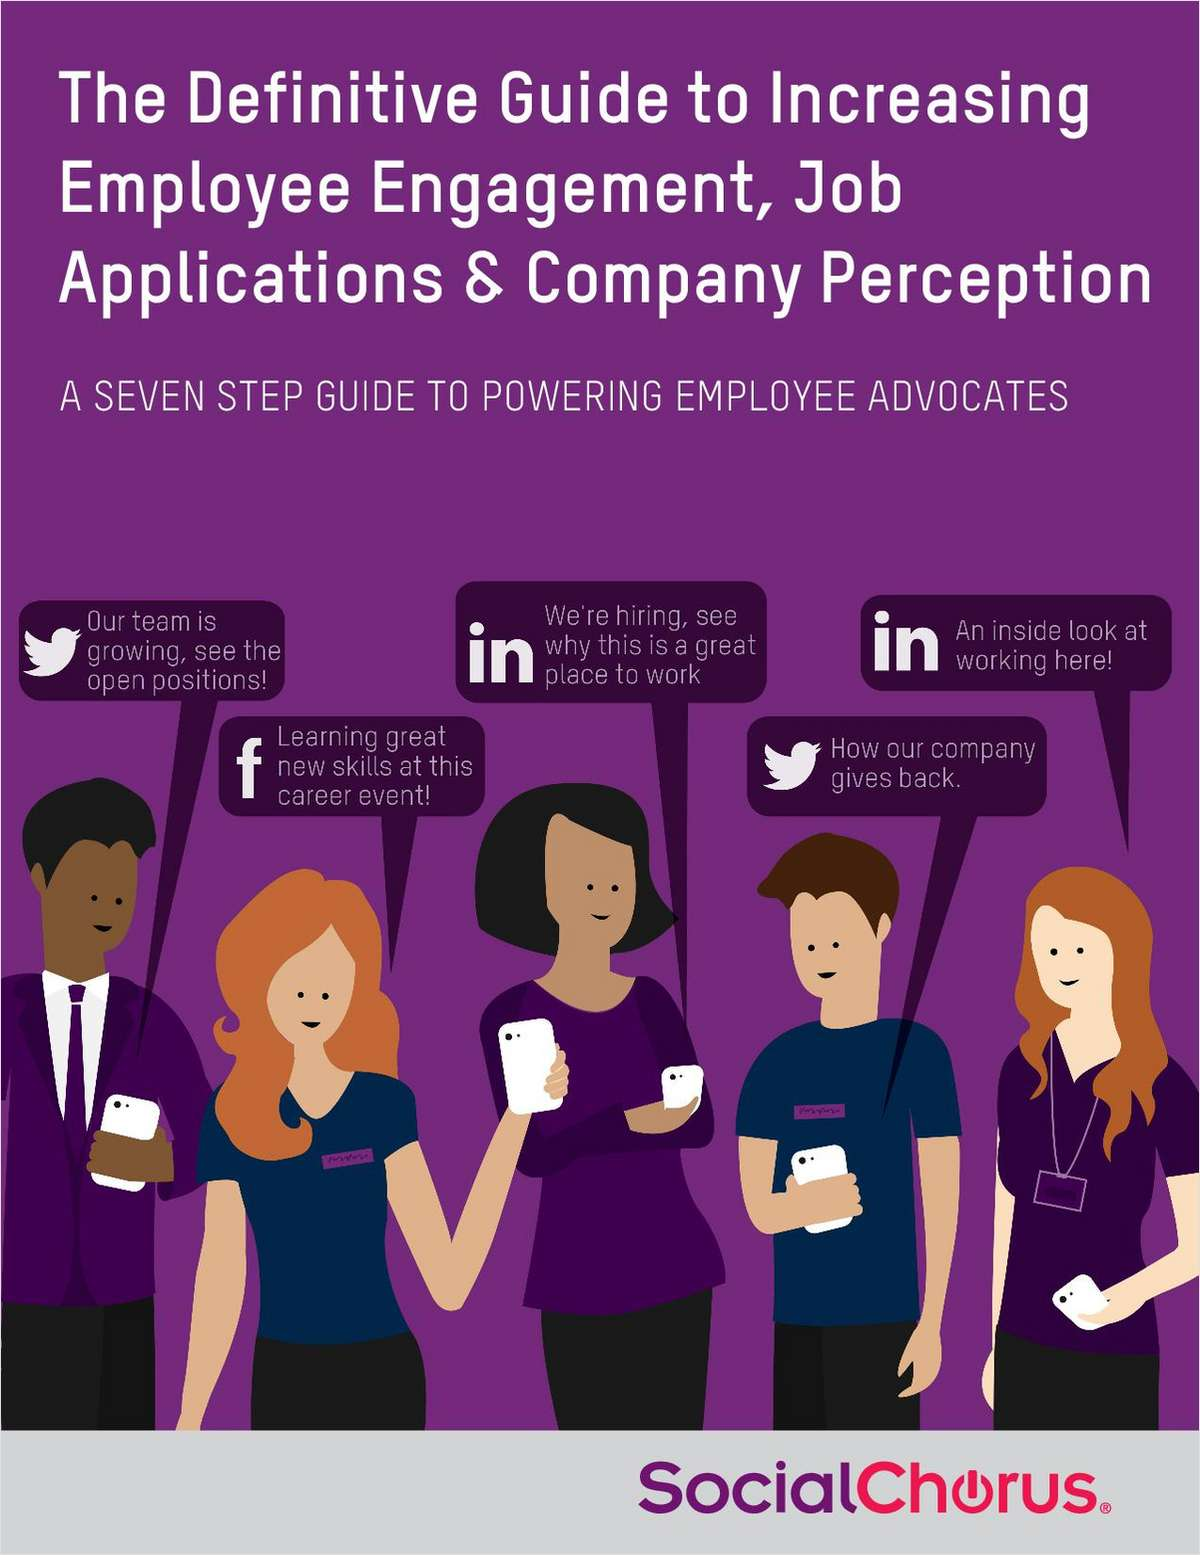 How HR Can Increase Employee Engagement, Applications & Perception